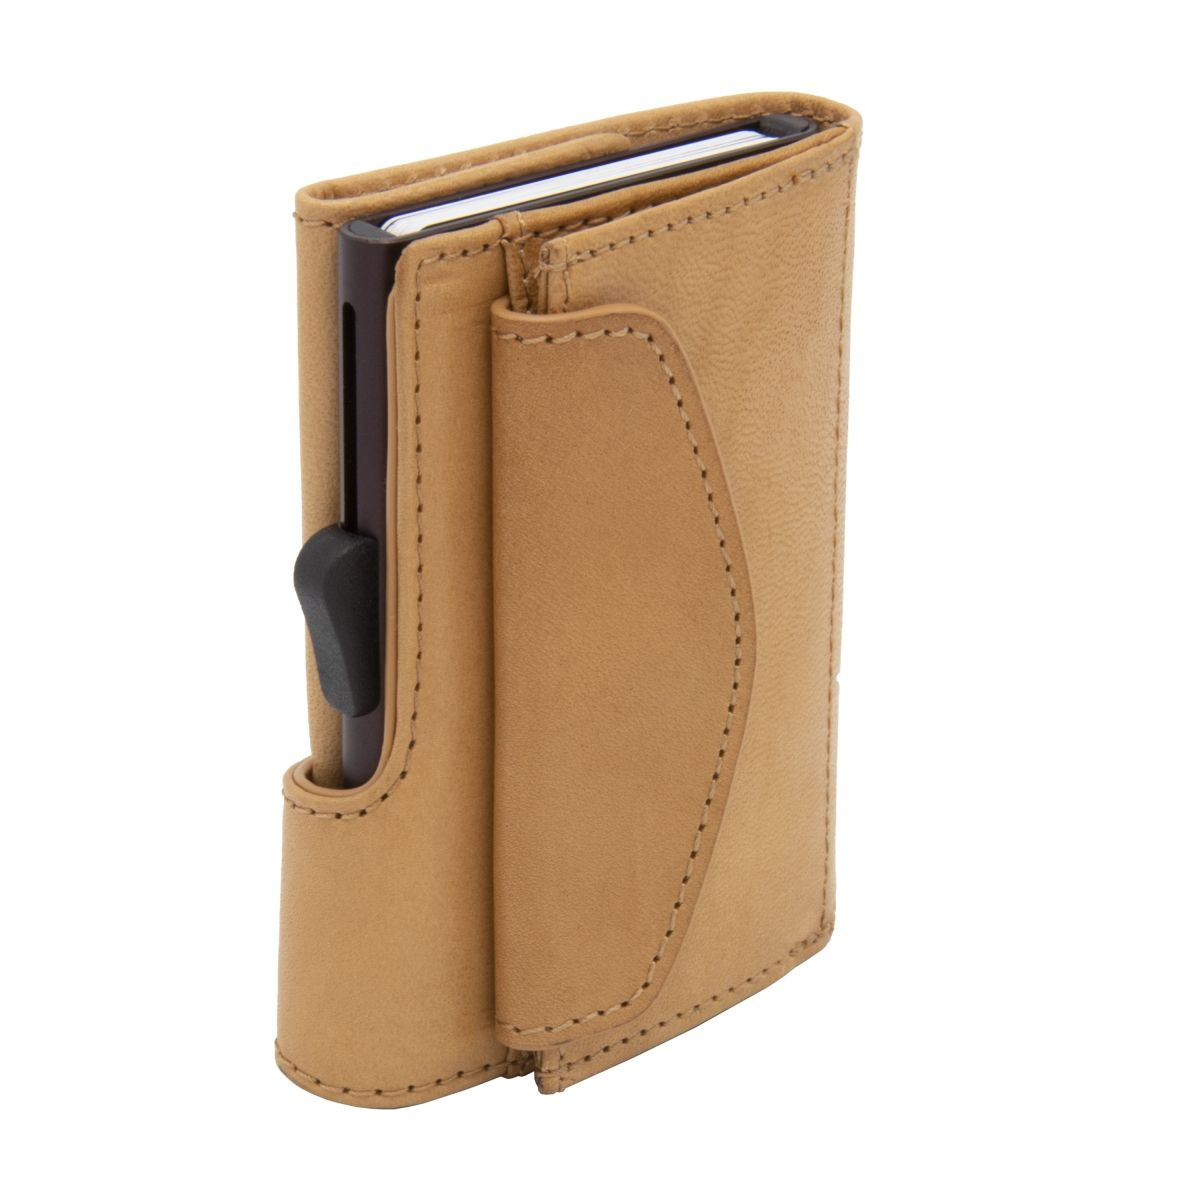 C-Secure Aluminum Card Holder with Genuine Leather and Coin Pouch - Saddle